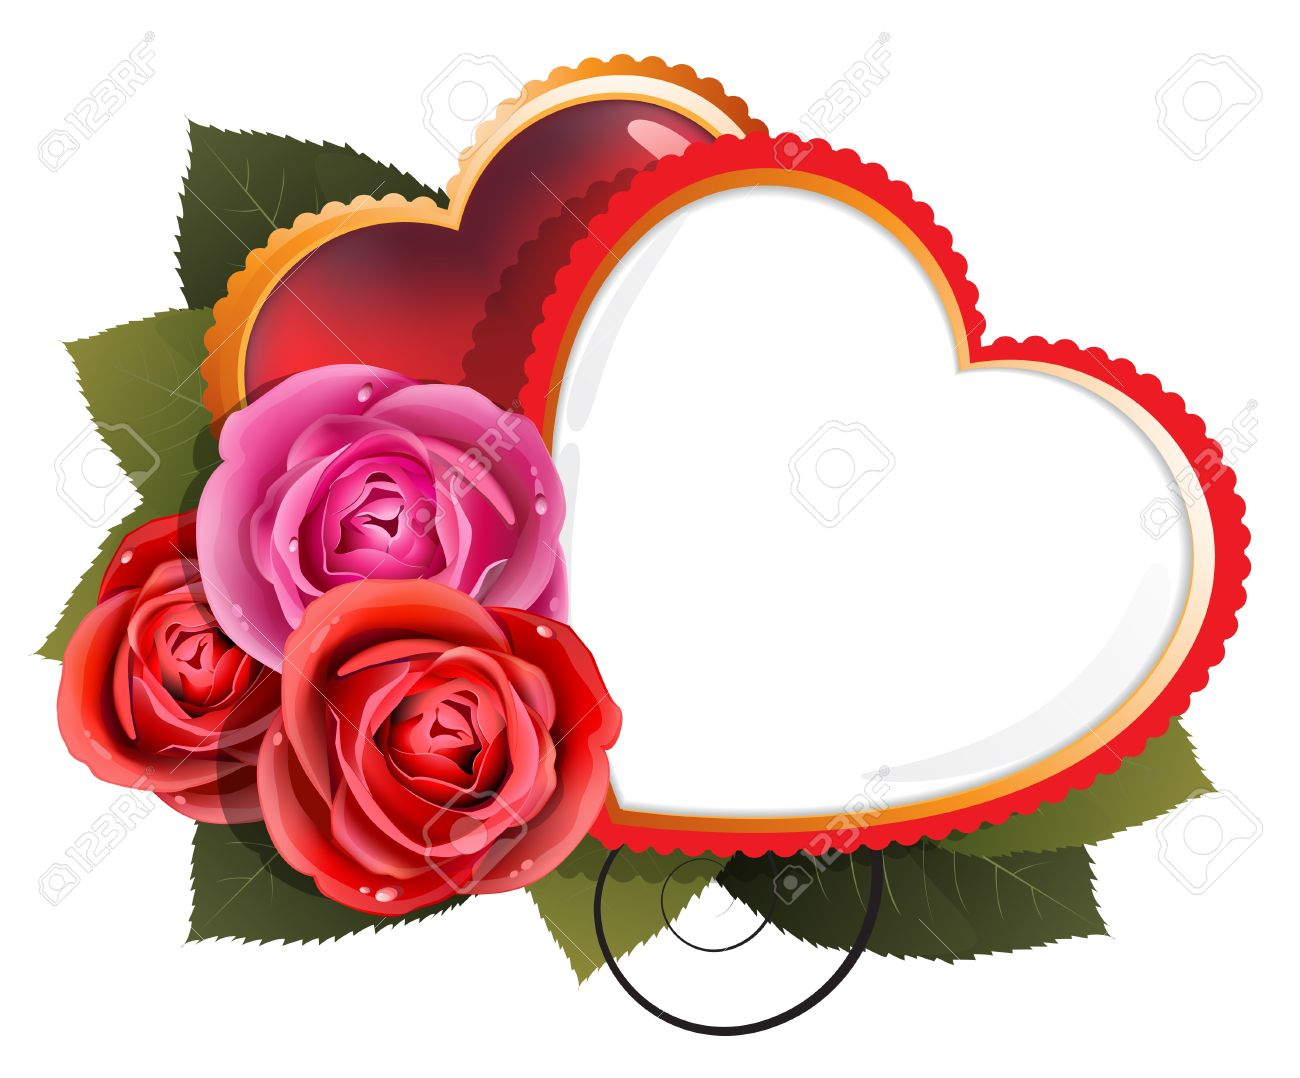 Valentine Hearts And Roses On A White Background Royalty Free Cliparts Vectors And Stock Illustration Image 17529199